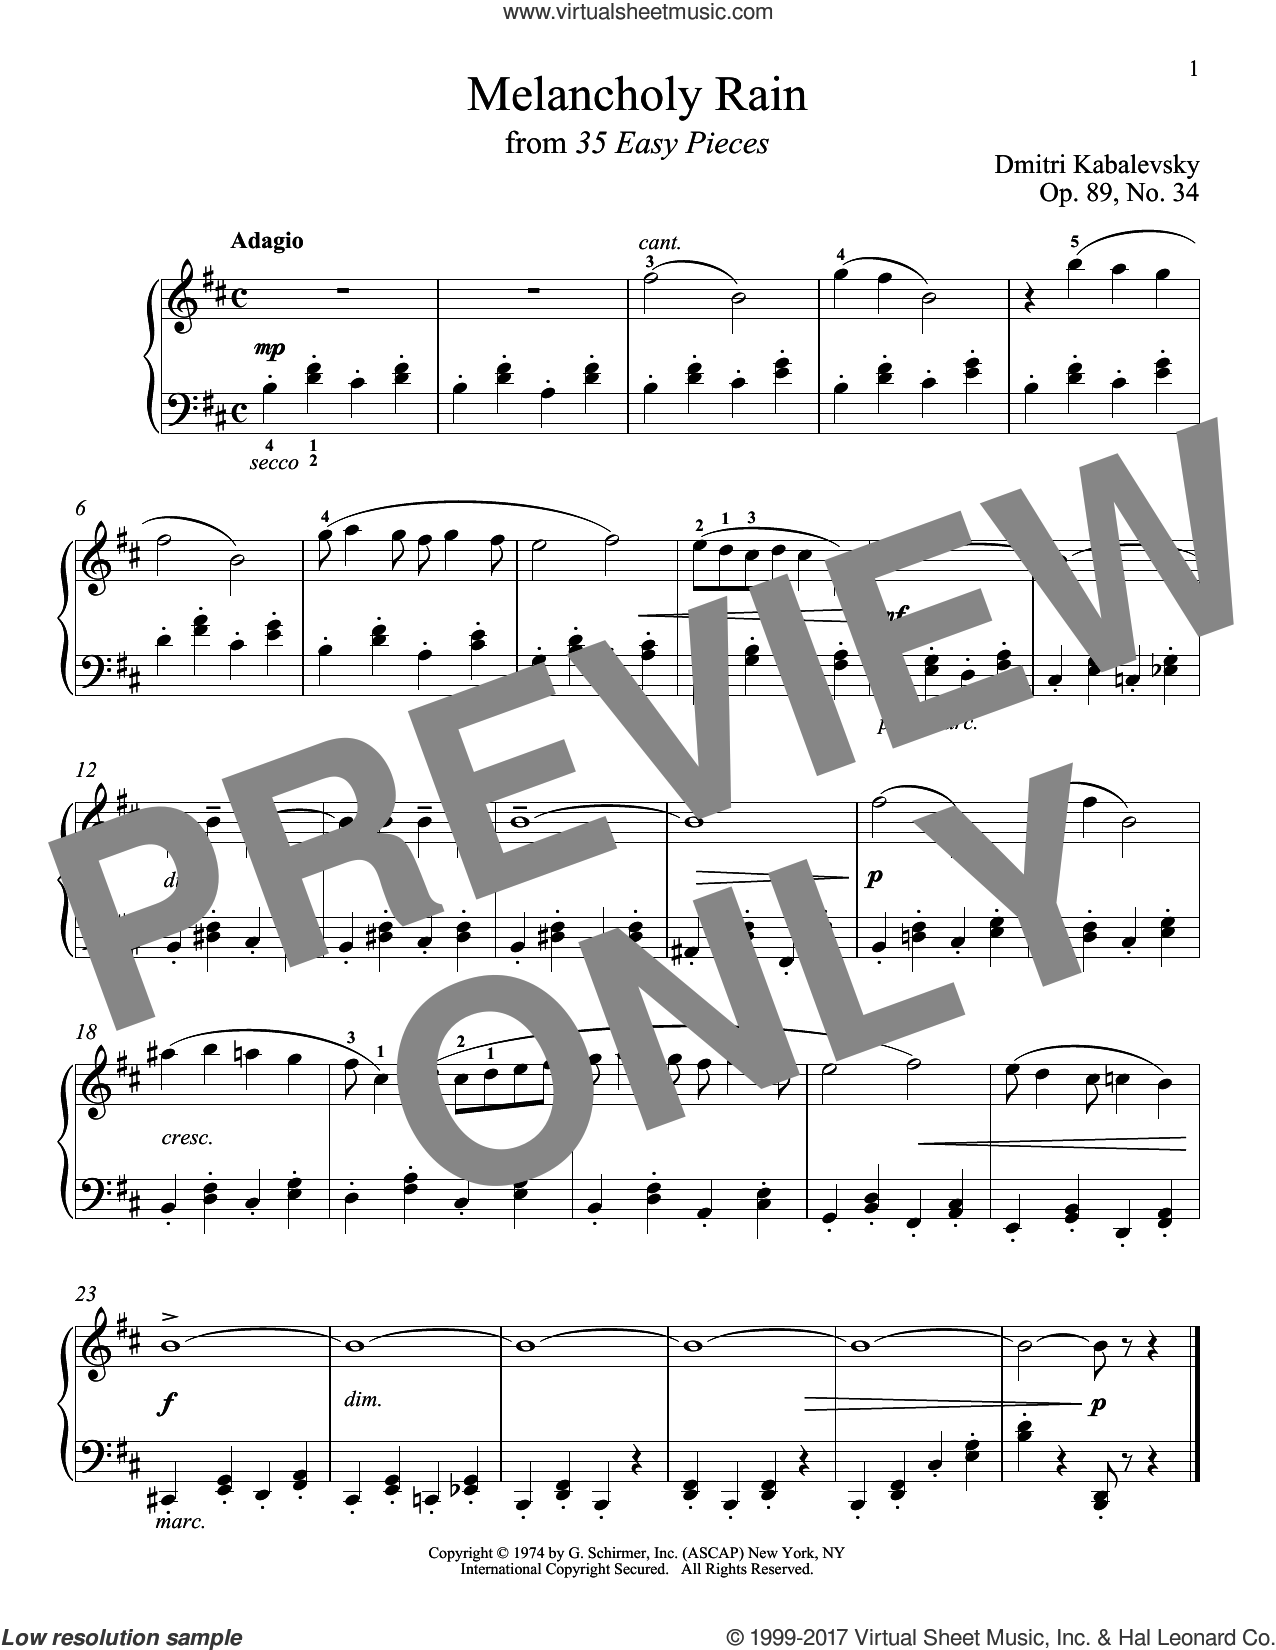 Melancholy Rain, Op. 89, No. 34 sheet music for piano solo by Dmitri Kabalevsky, classical score, intermediate skill level